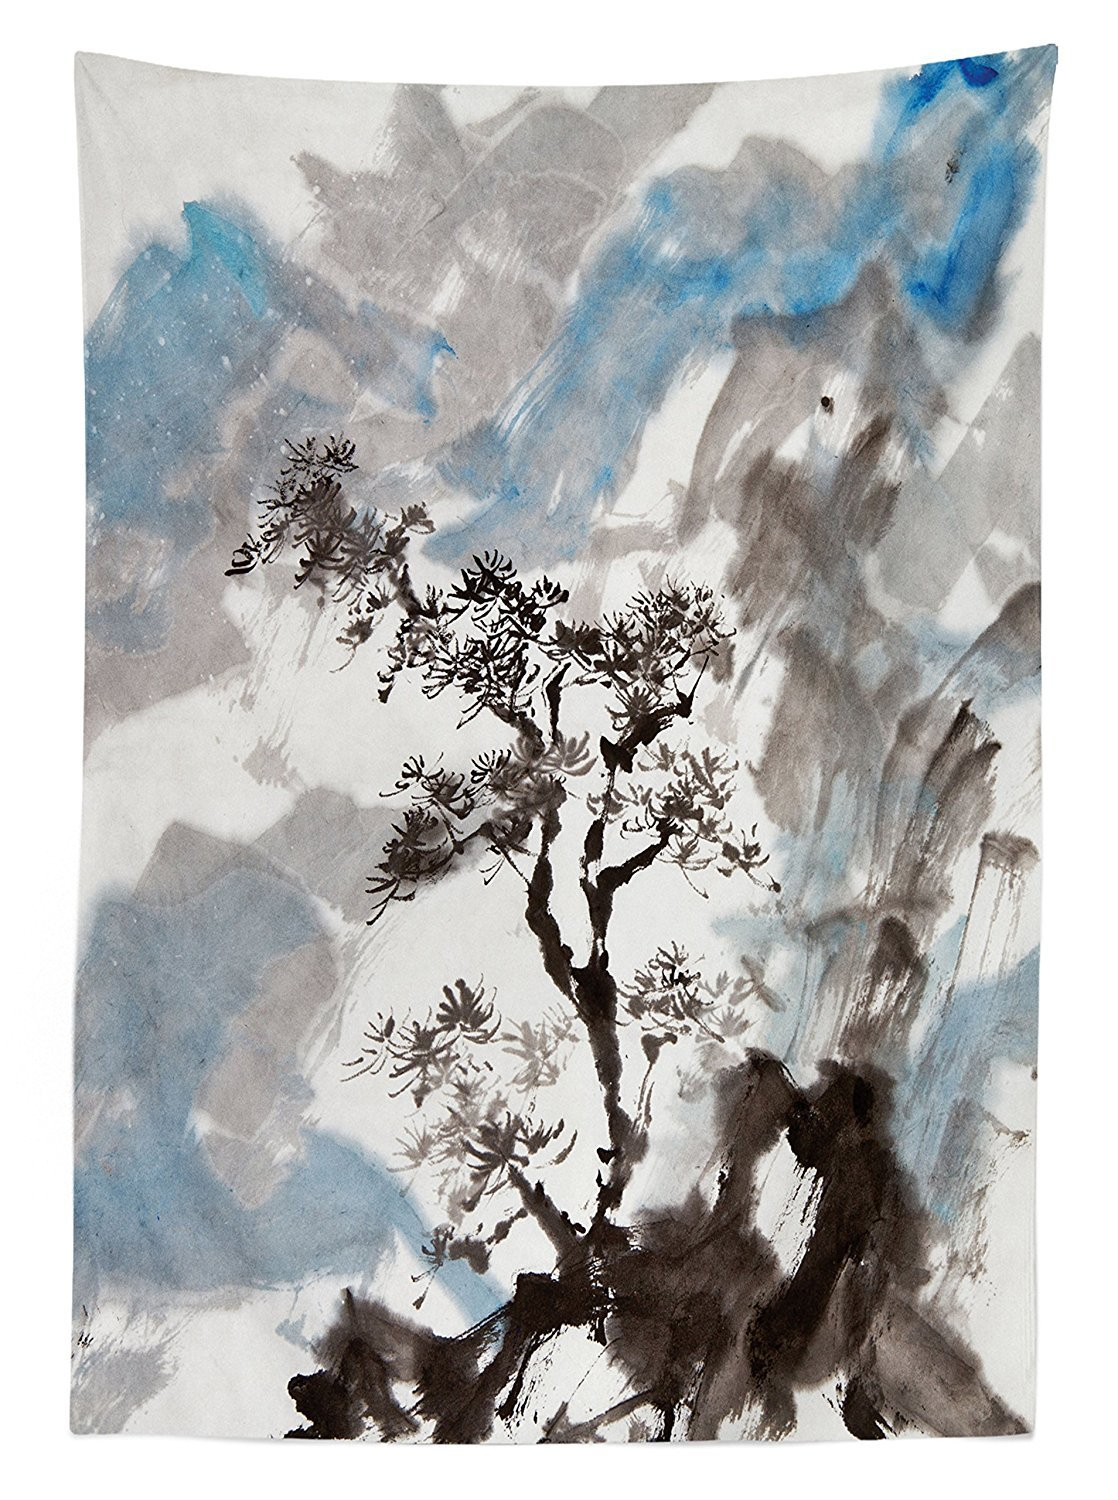 Hazy Artistic Depiction of A Pine Tree Landscape on the Hill Mountain with Rough Blasts Rectangular Table Cover for Dining Room Kitchen Blue Grey COMINHKPR129149 Ambesonne Japanese Decor Tablecloth 52x70 Inches